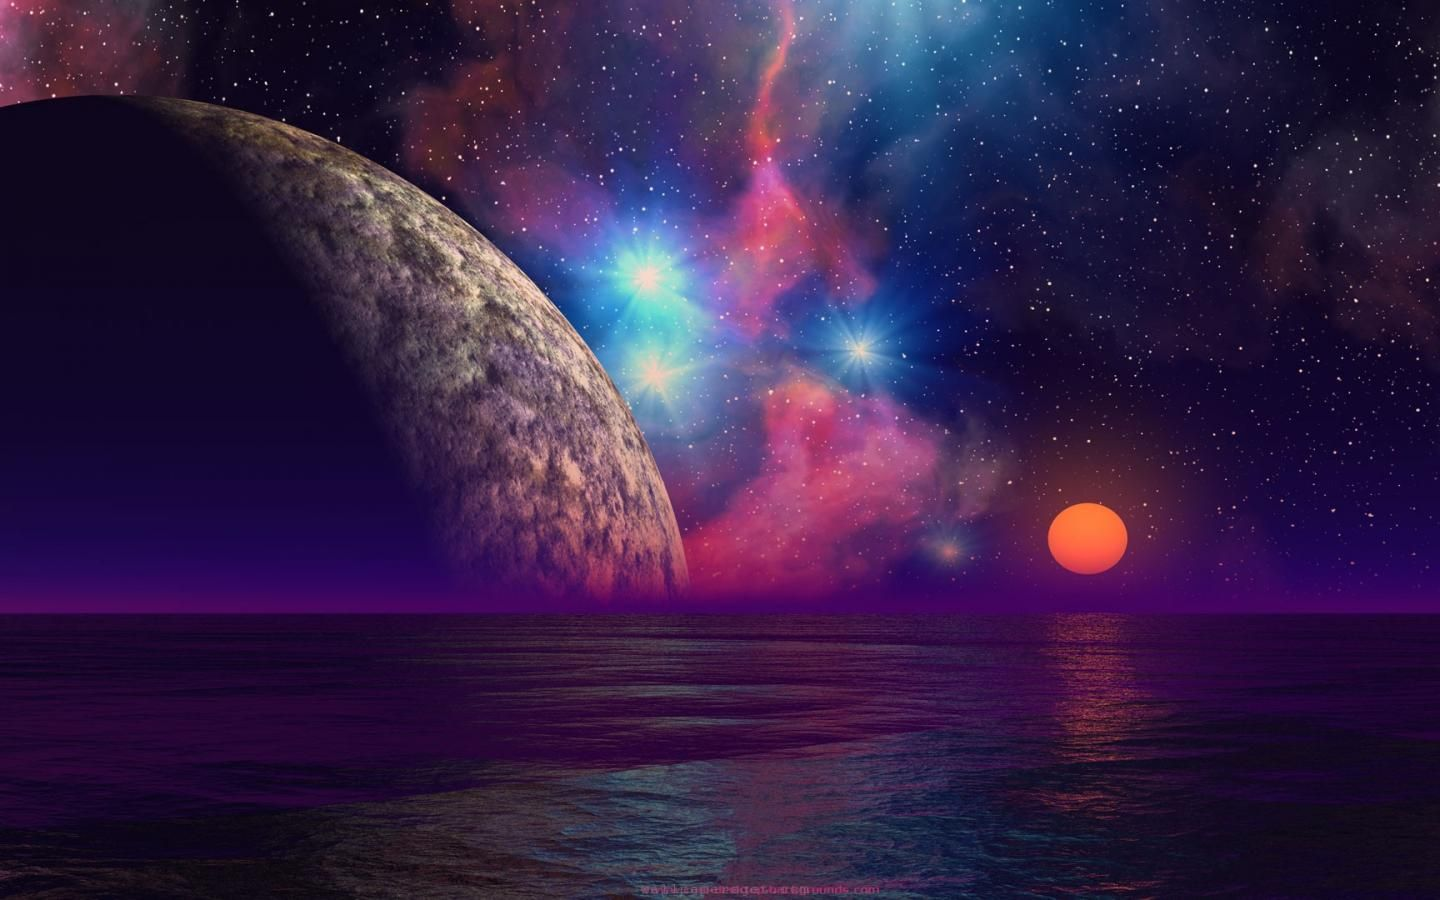 Space Ocean Sunset Planets Scifi Alien